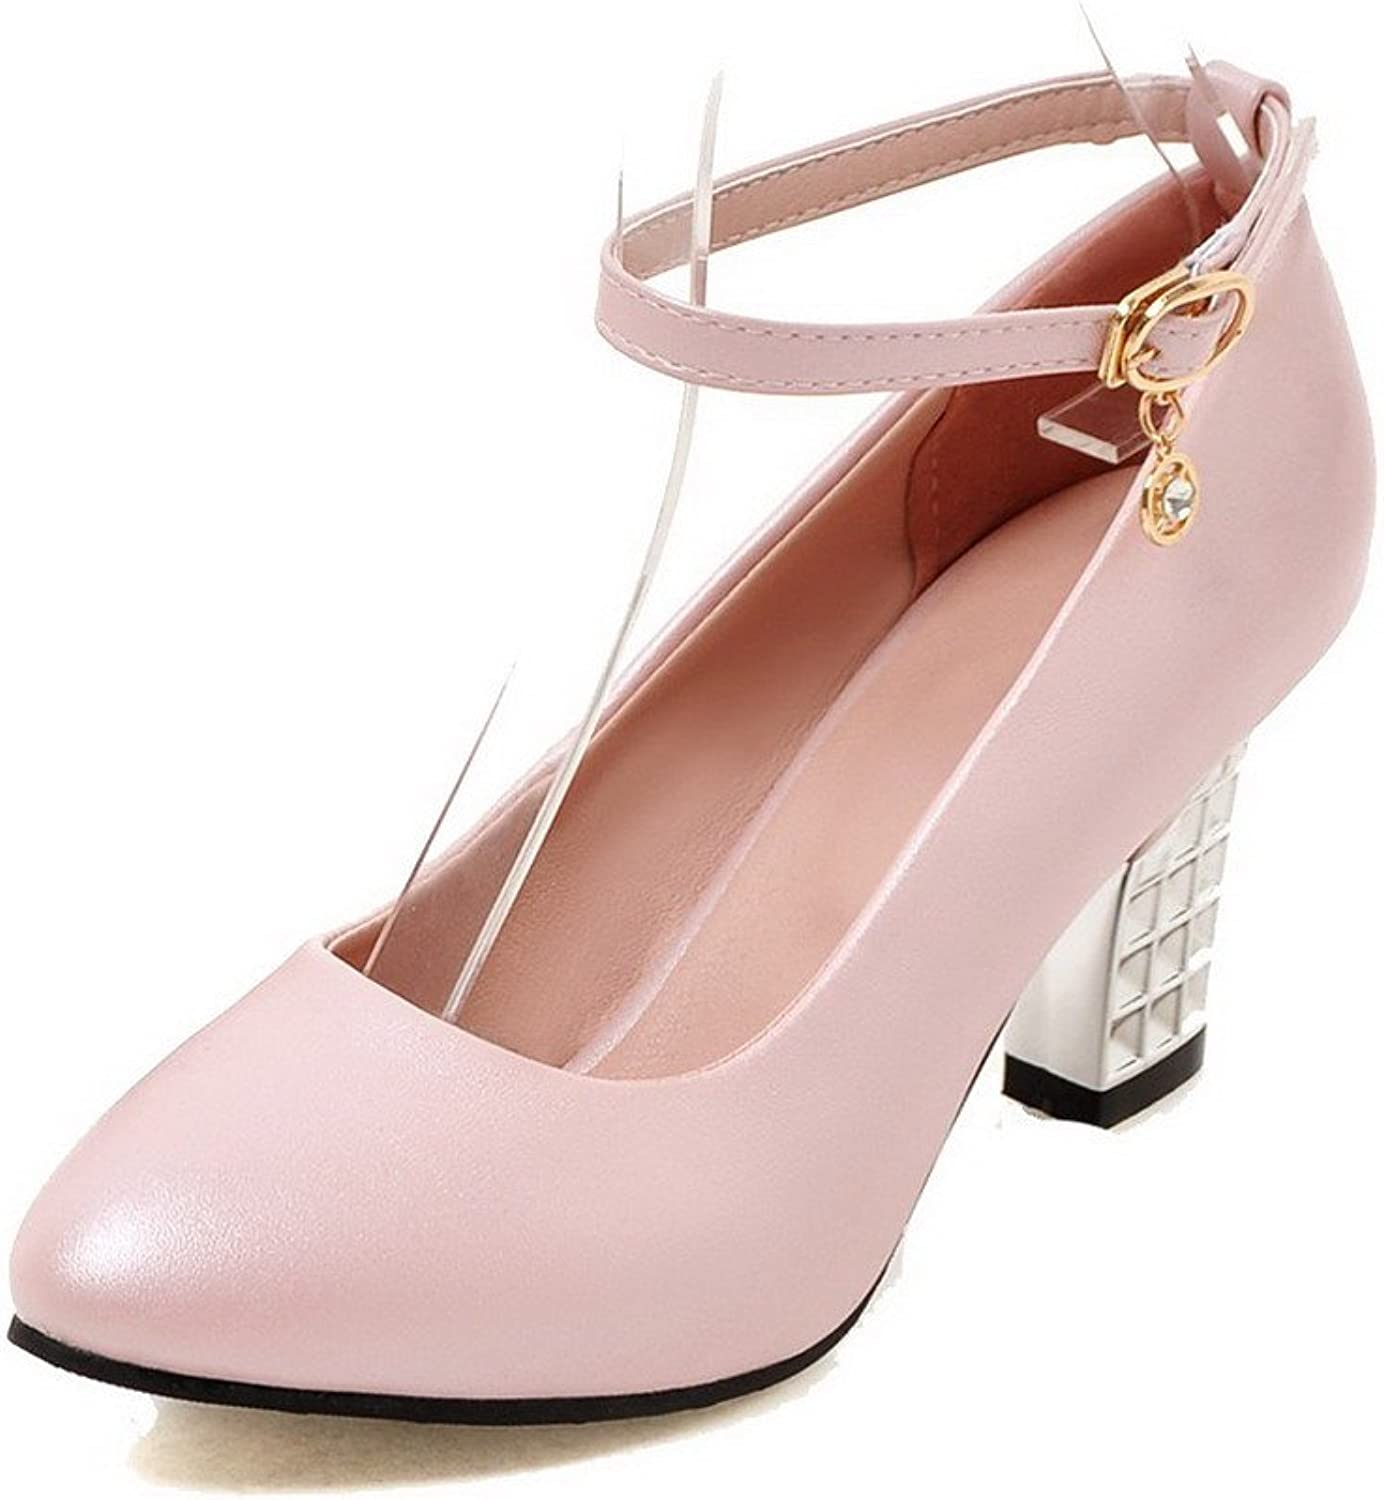 AmoonyFashion Women's PU Buckle Round-Toe High-Heels Solid Pumps, Pink, 36